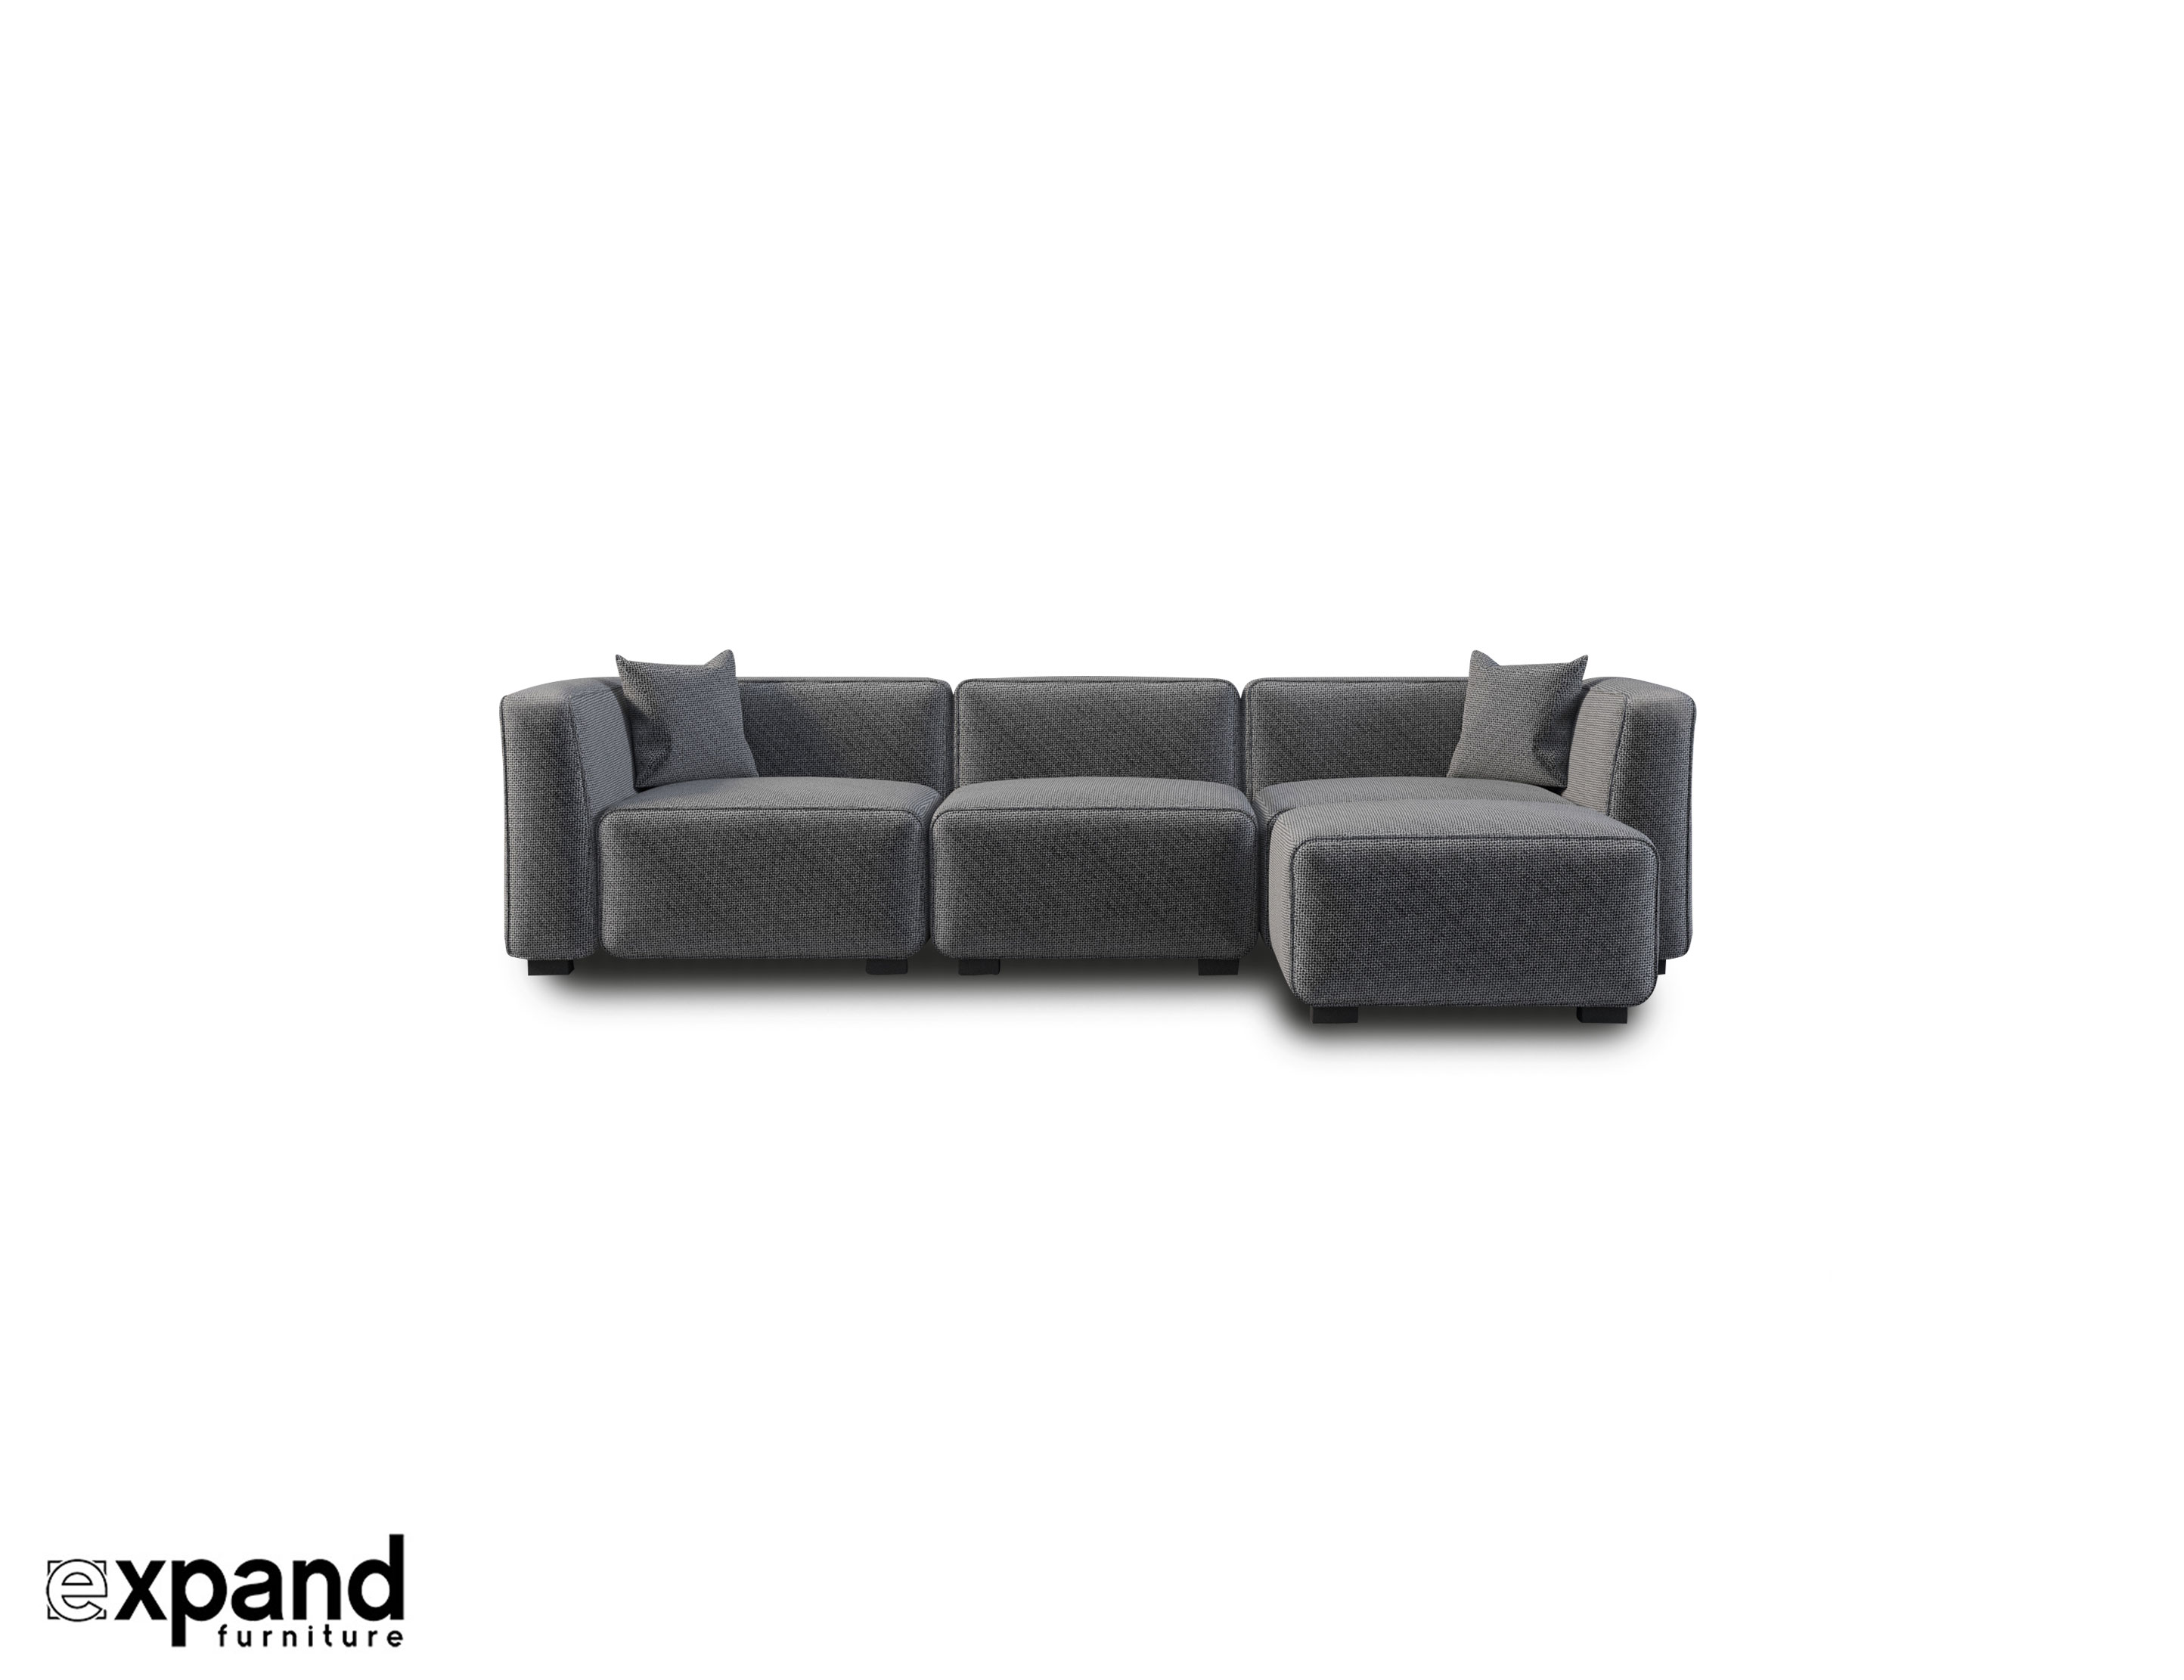 Modular Sofas and Sectional Sofas Archives